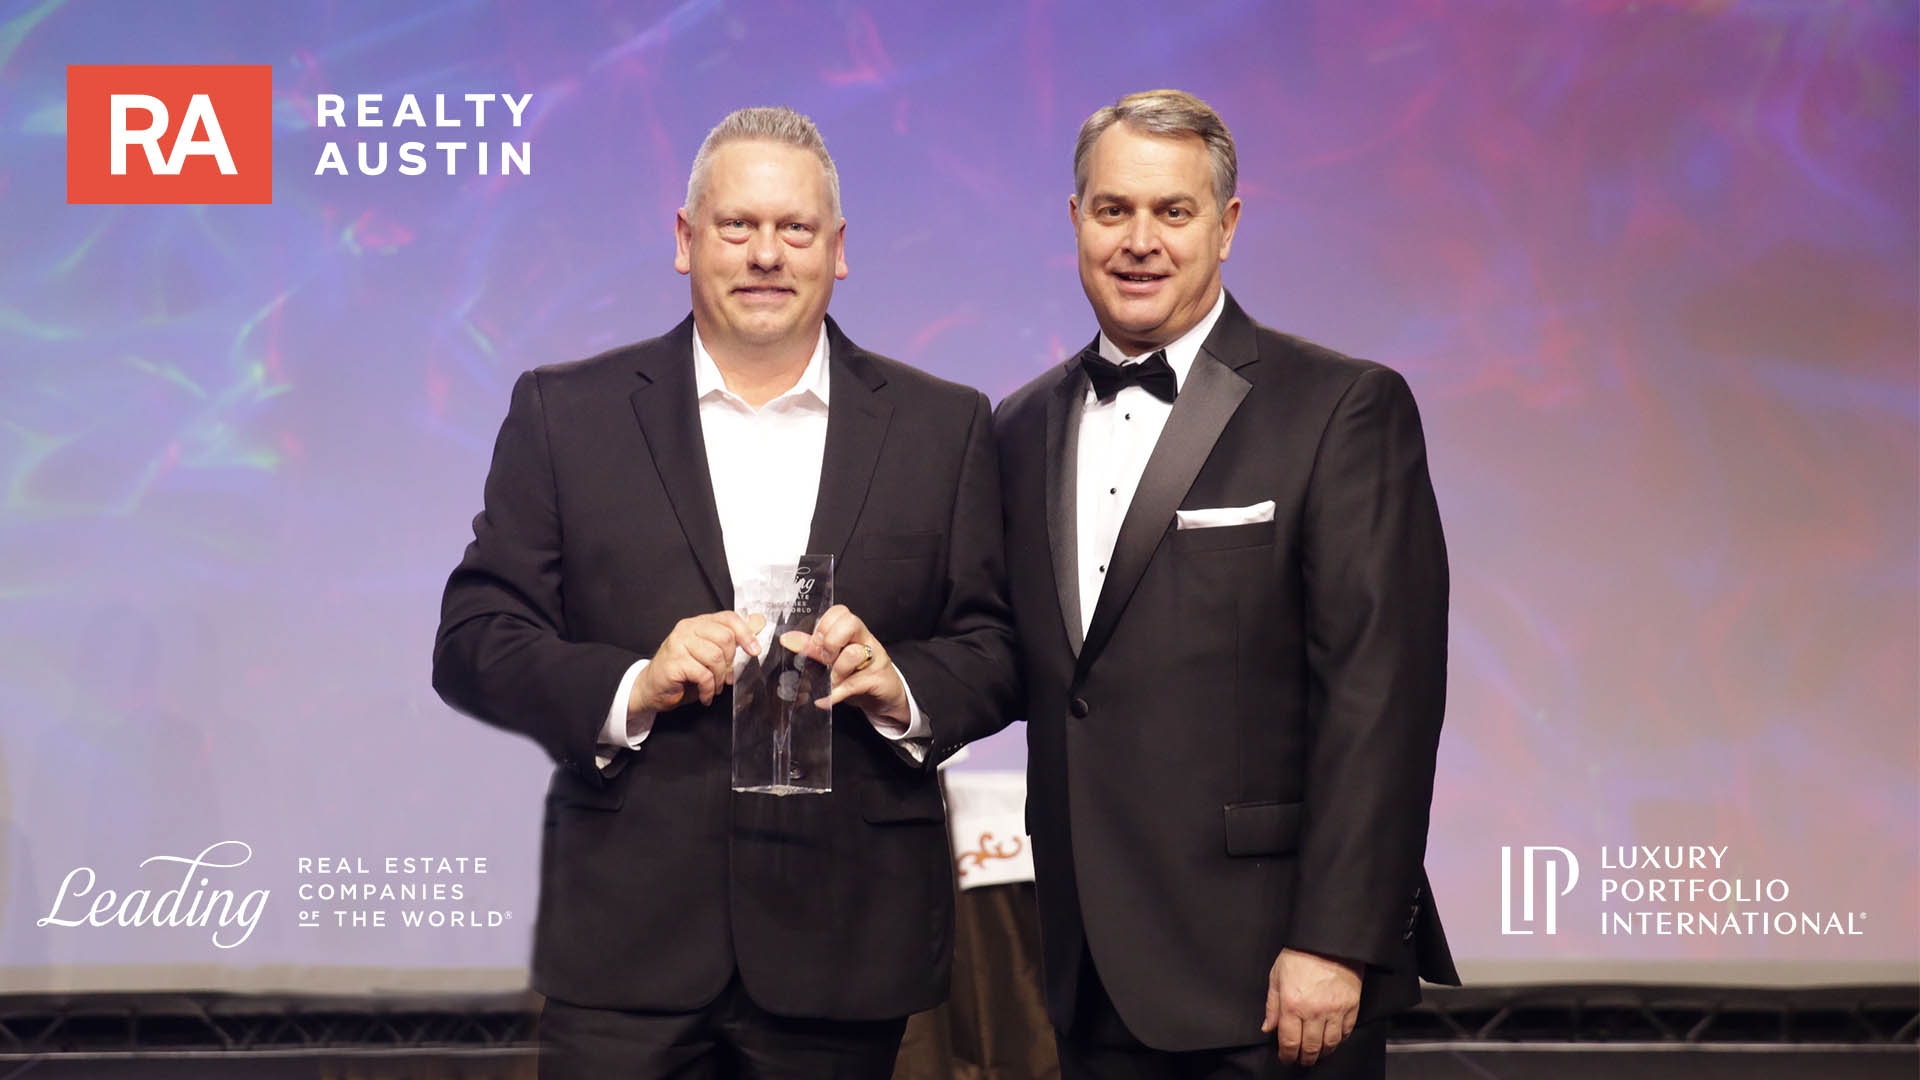 Image of Realty Austin at Leading Real Estate Companies of the World® Summit